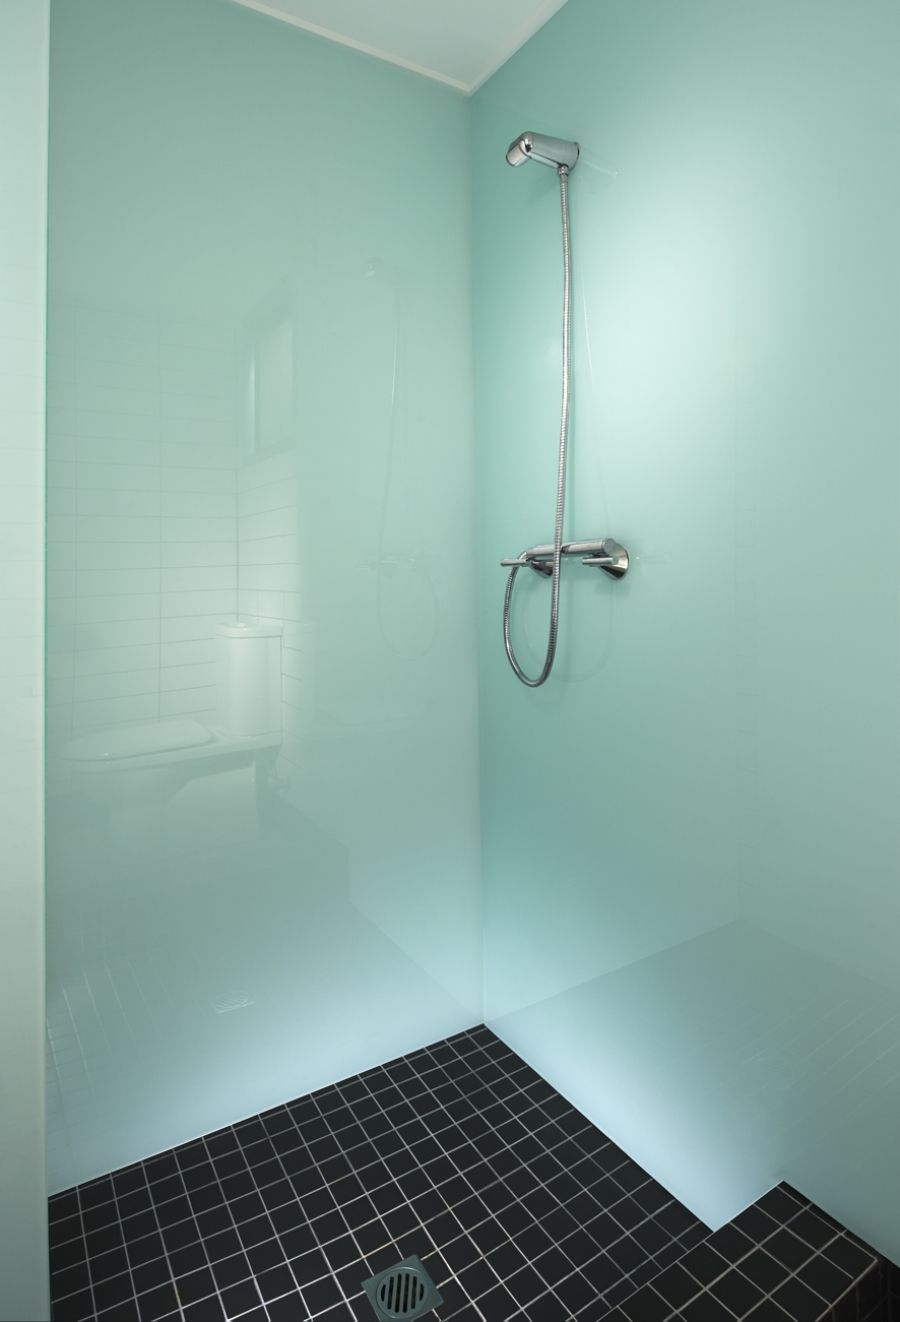 High Gloss Acrylic Wall Panels Innovate Building Solutions Bathroom Wall Panels Shower Panels